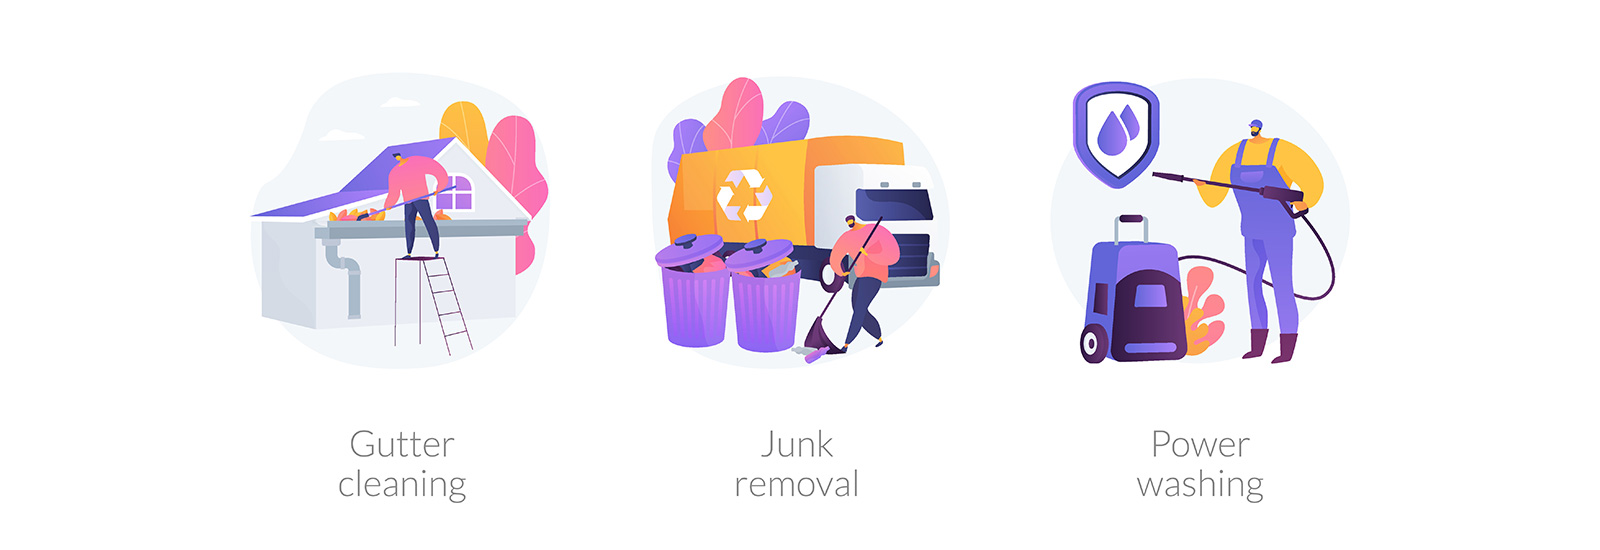 Junk/waste removals